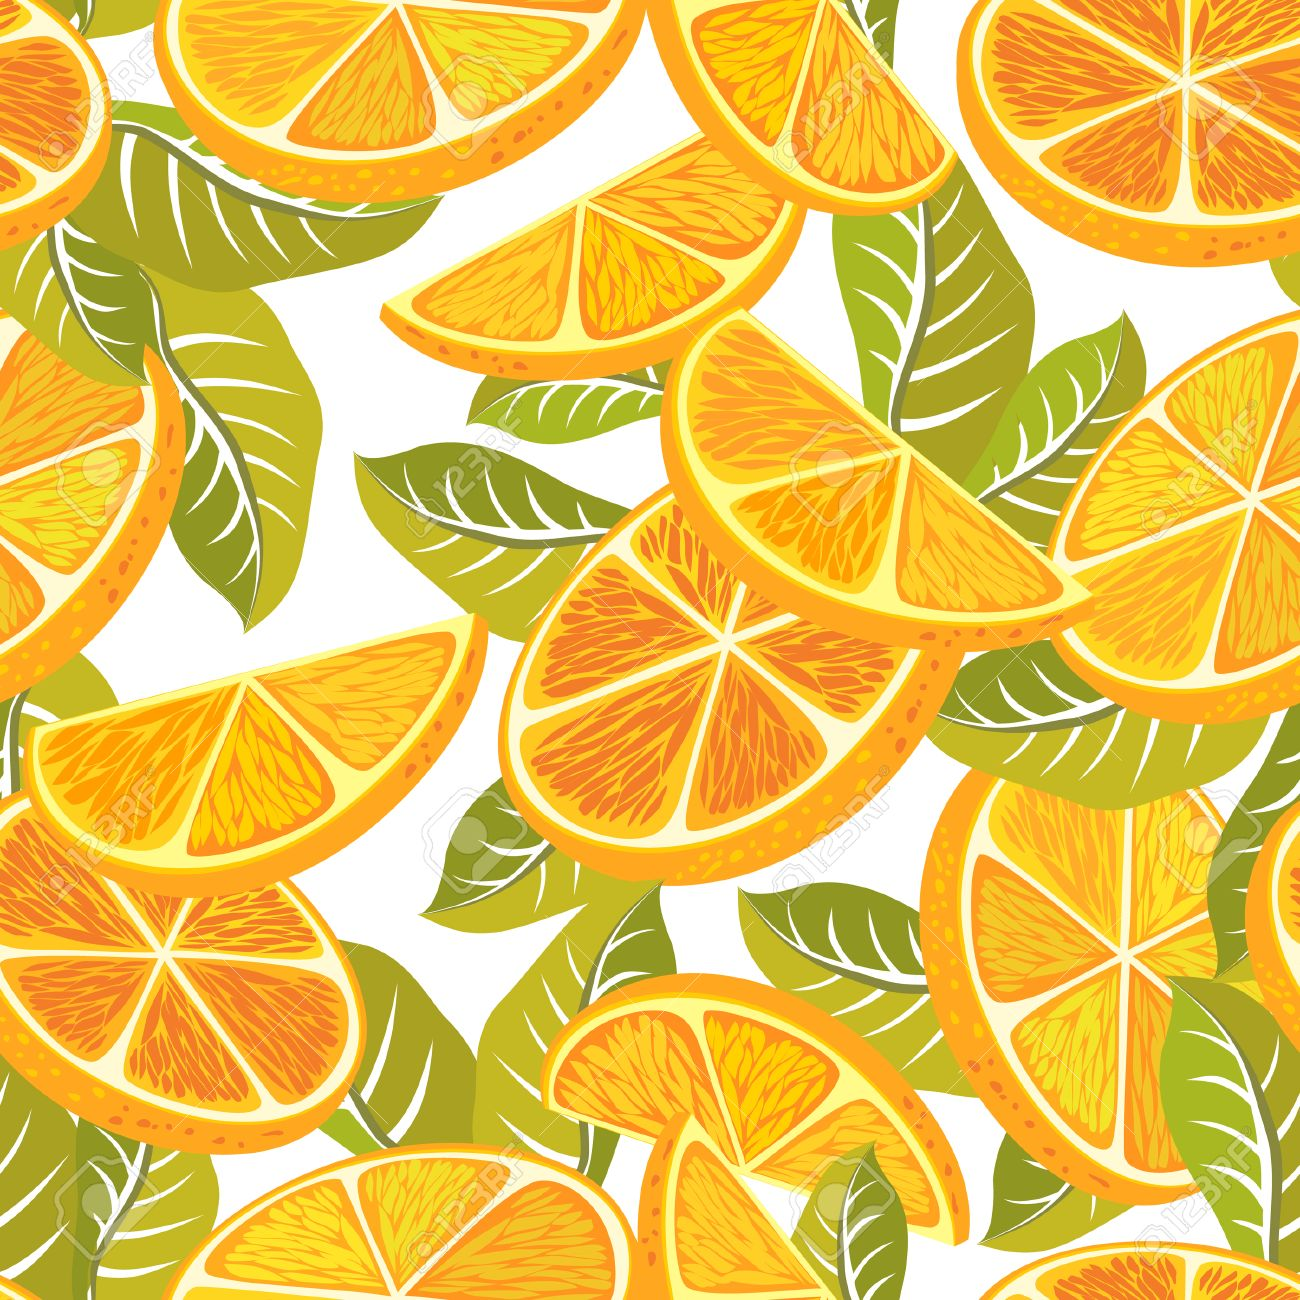 54364680 cut orange decorative seamless retro pattern on a white background textile and wallpaper fruit backg